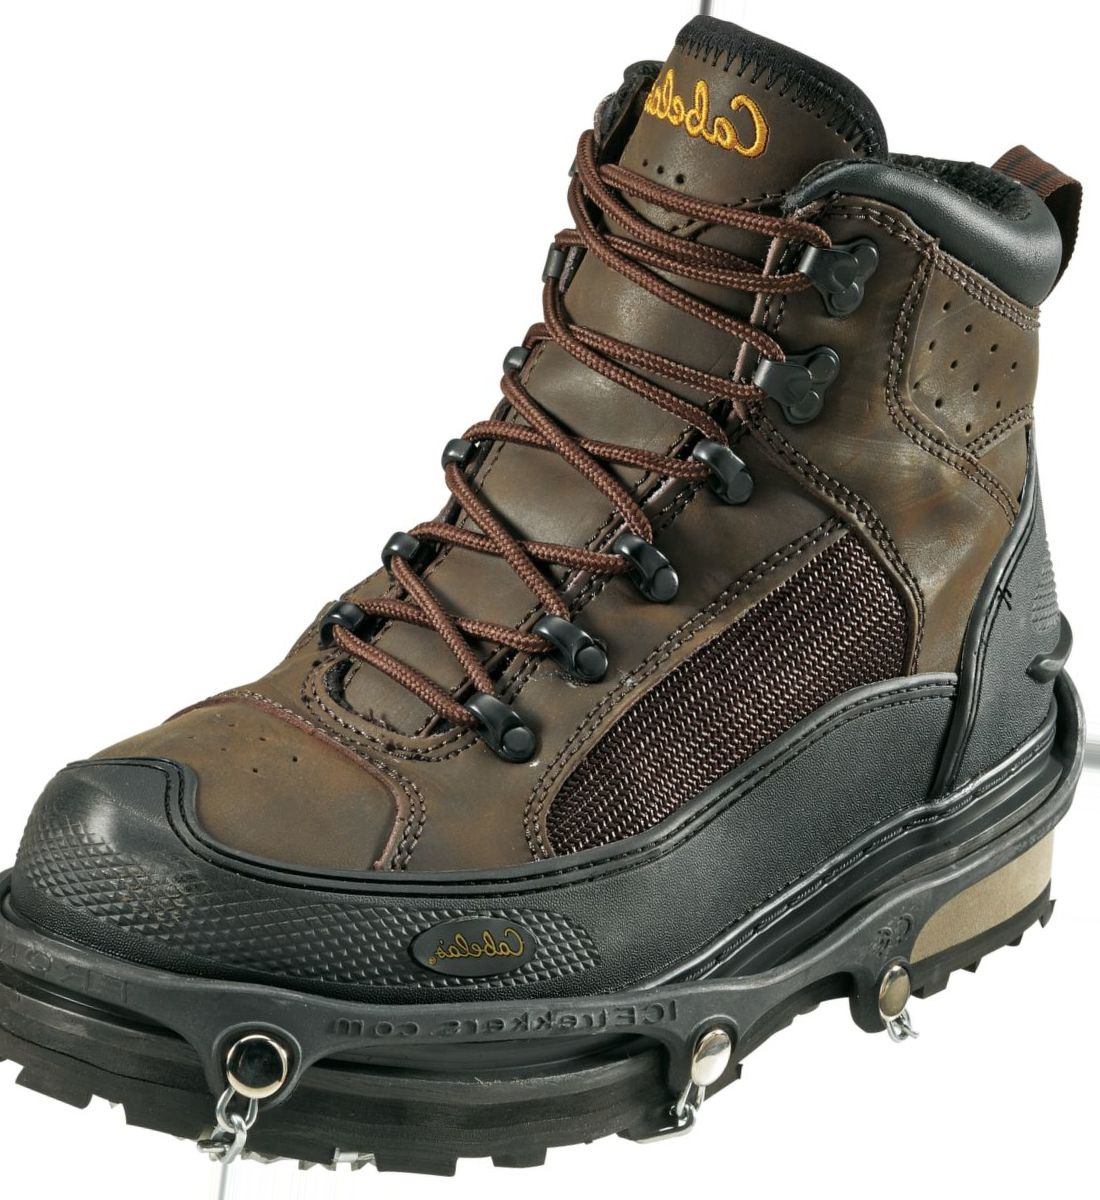 Streamtrekkers Wading-Boot Traction Device